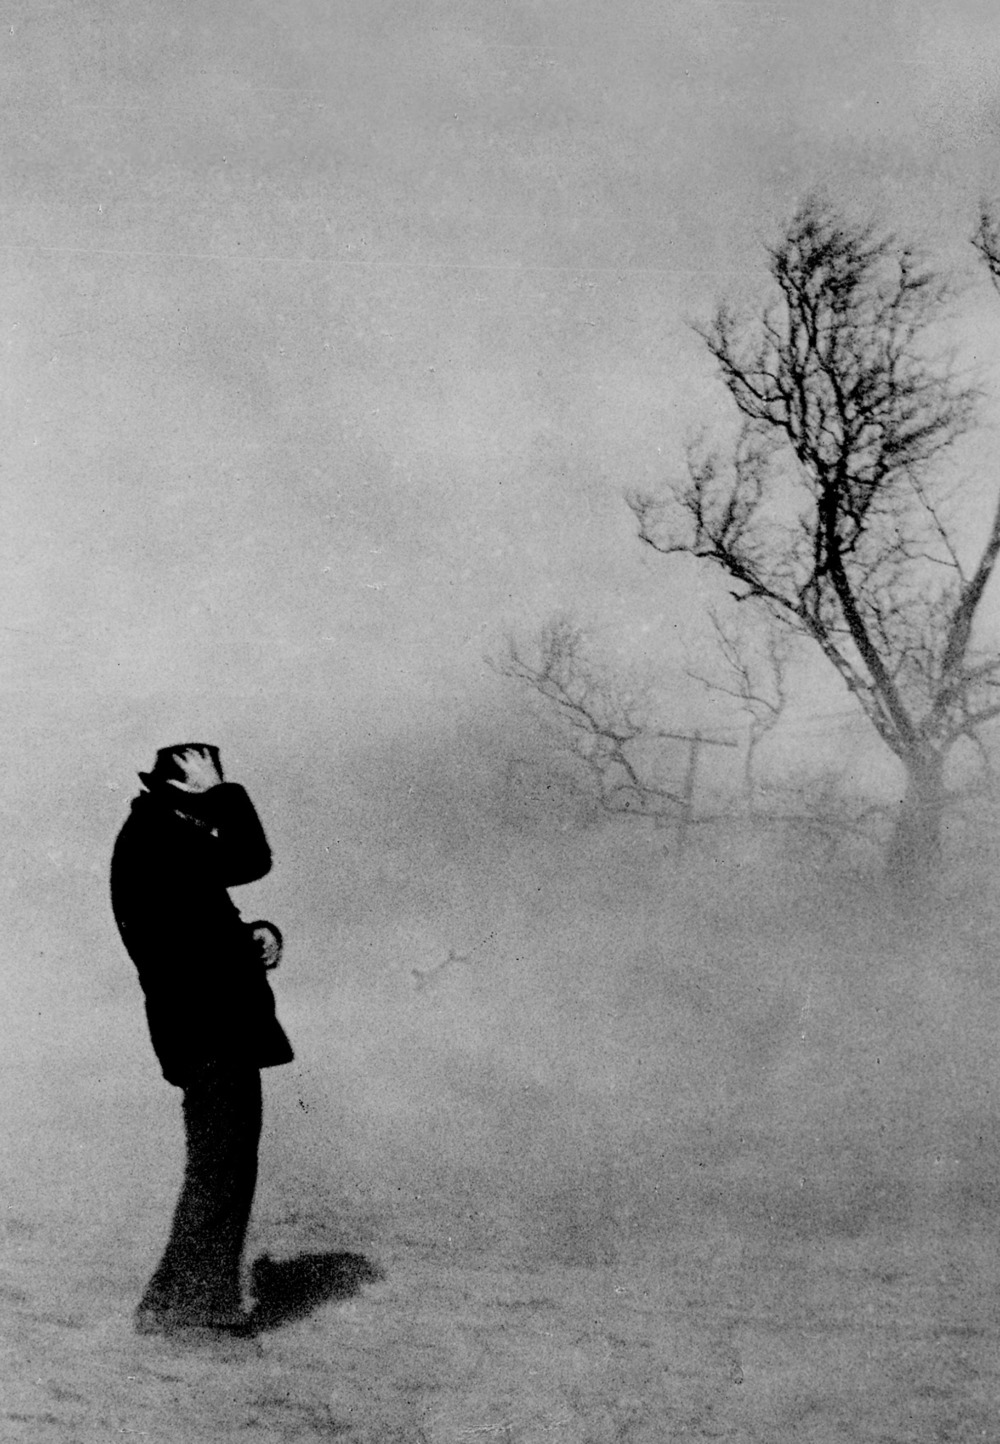 A man tries to hold onto his hand during a dust storm next to a desolate tree.